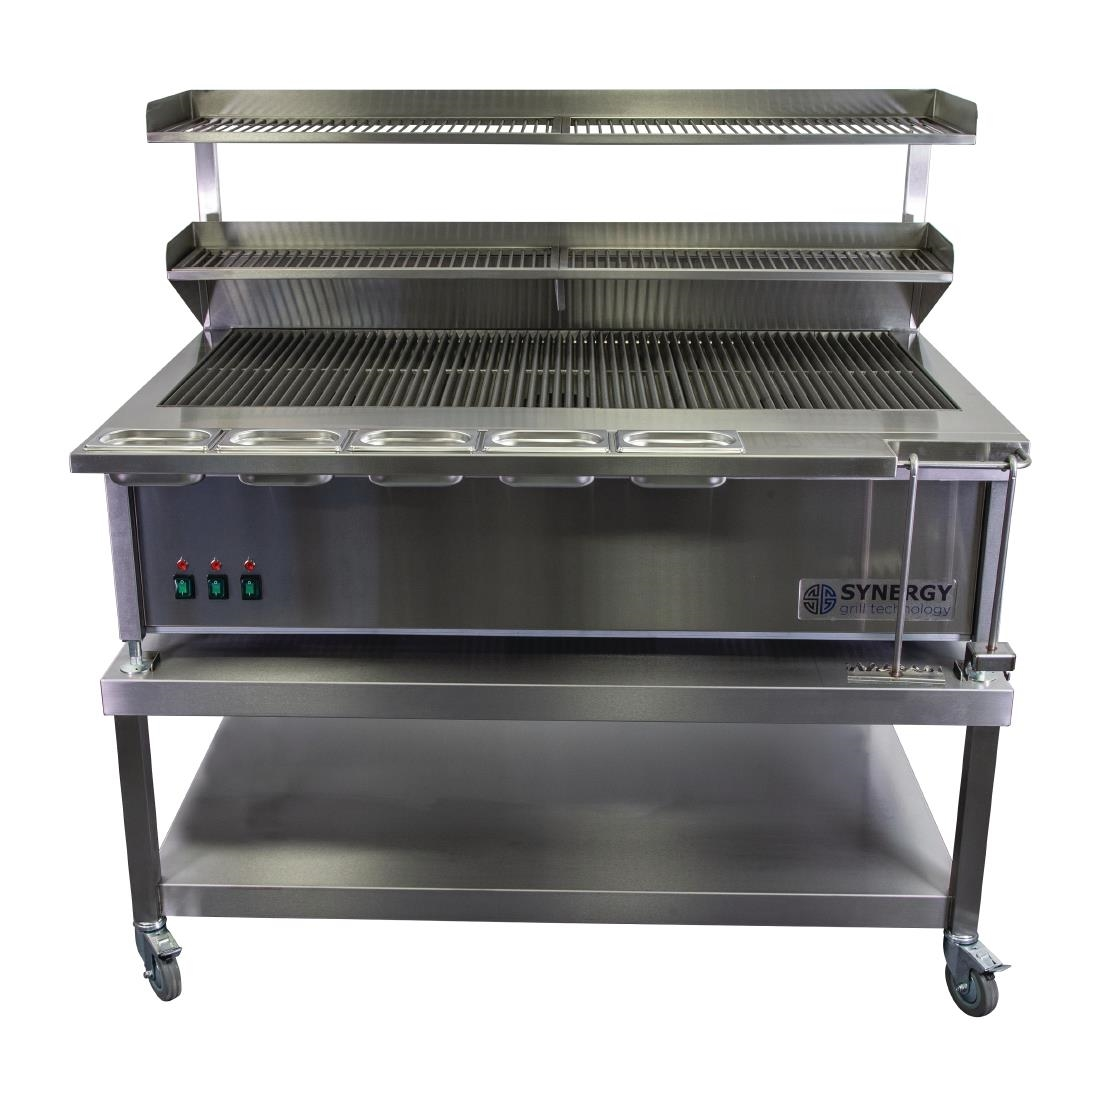 Image of Synergy SG1300 Grill with Garnish Rail and Slow Cook Shelf